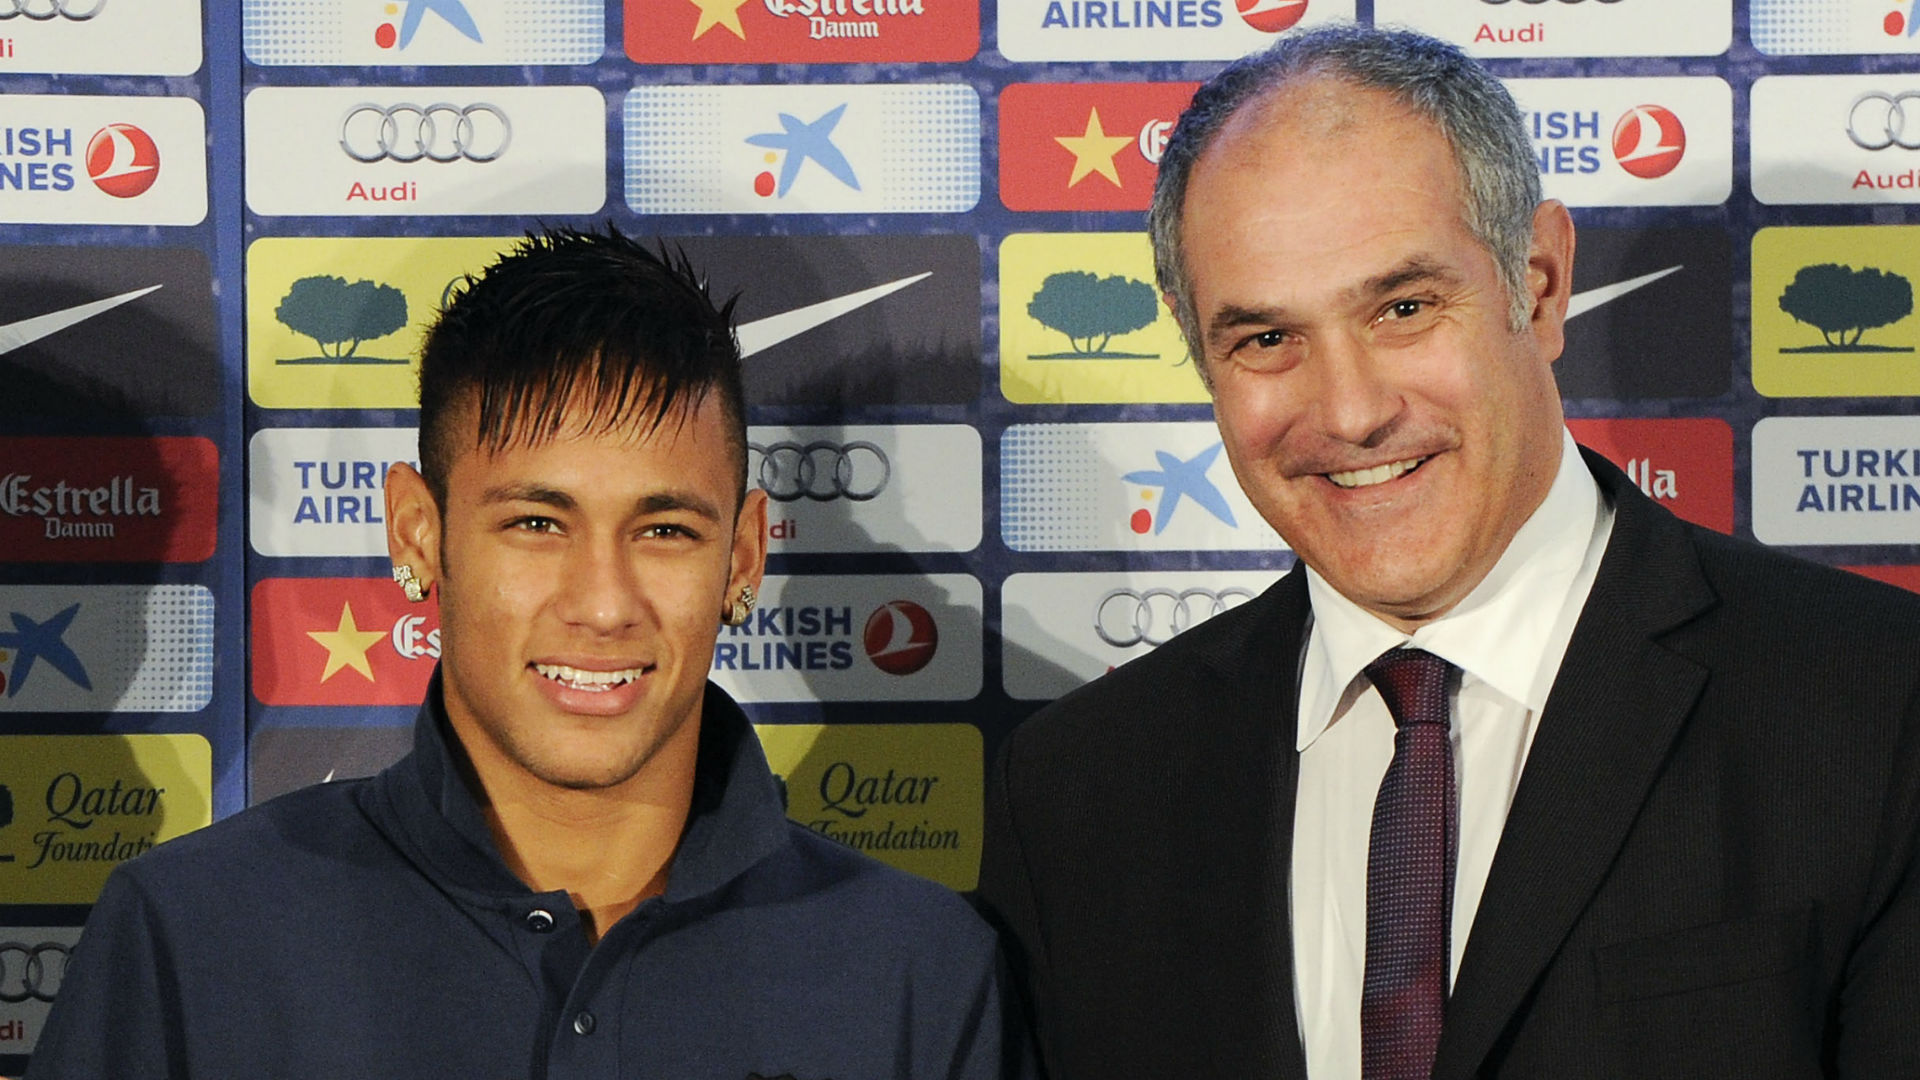 Neymar is very, very, very happy at Barca - Zubizarreta on Madrid rumours